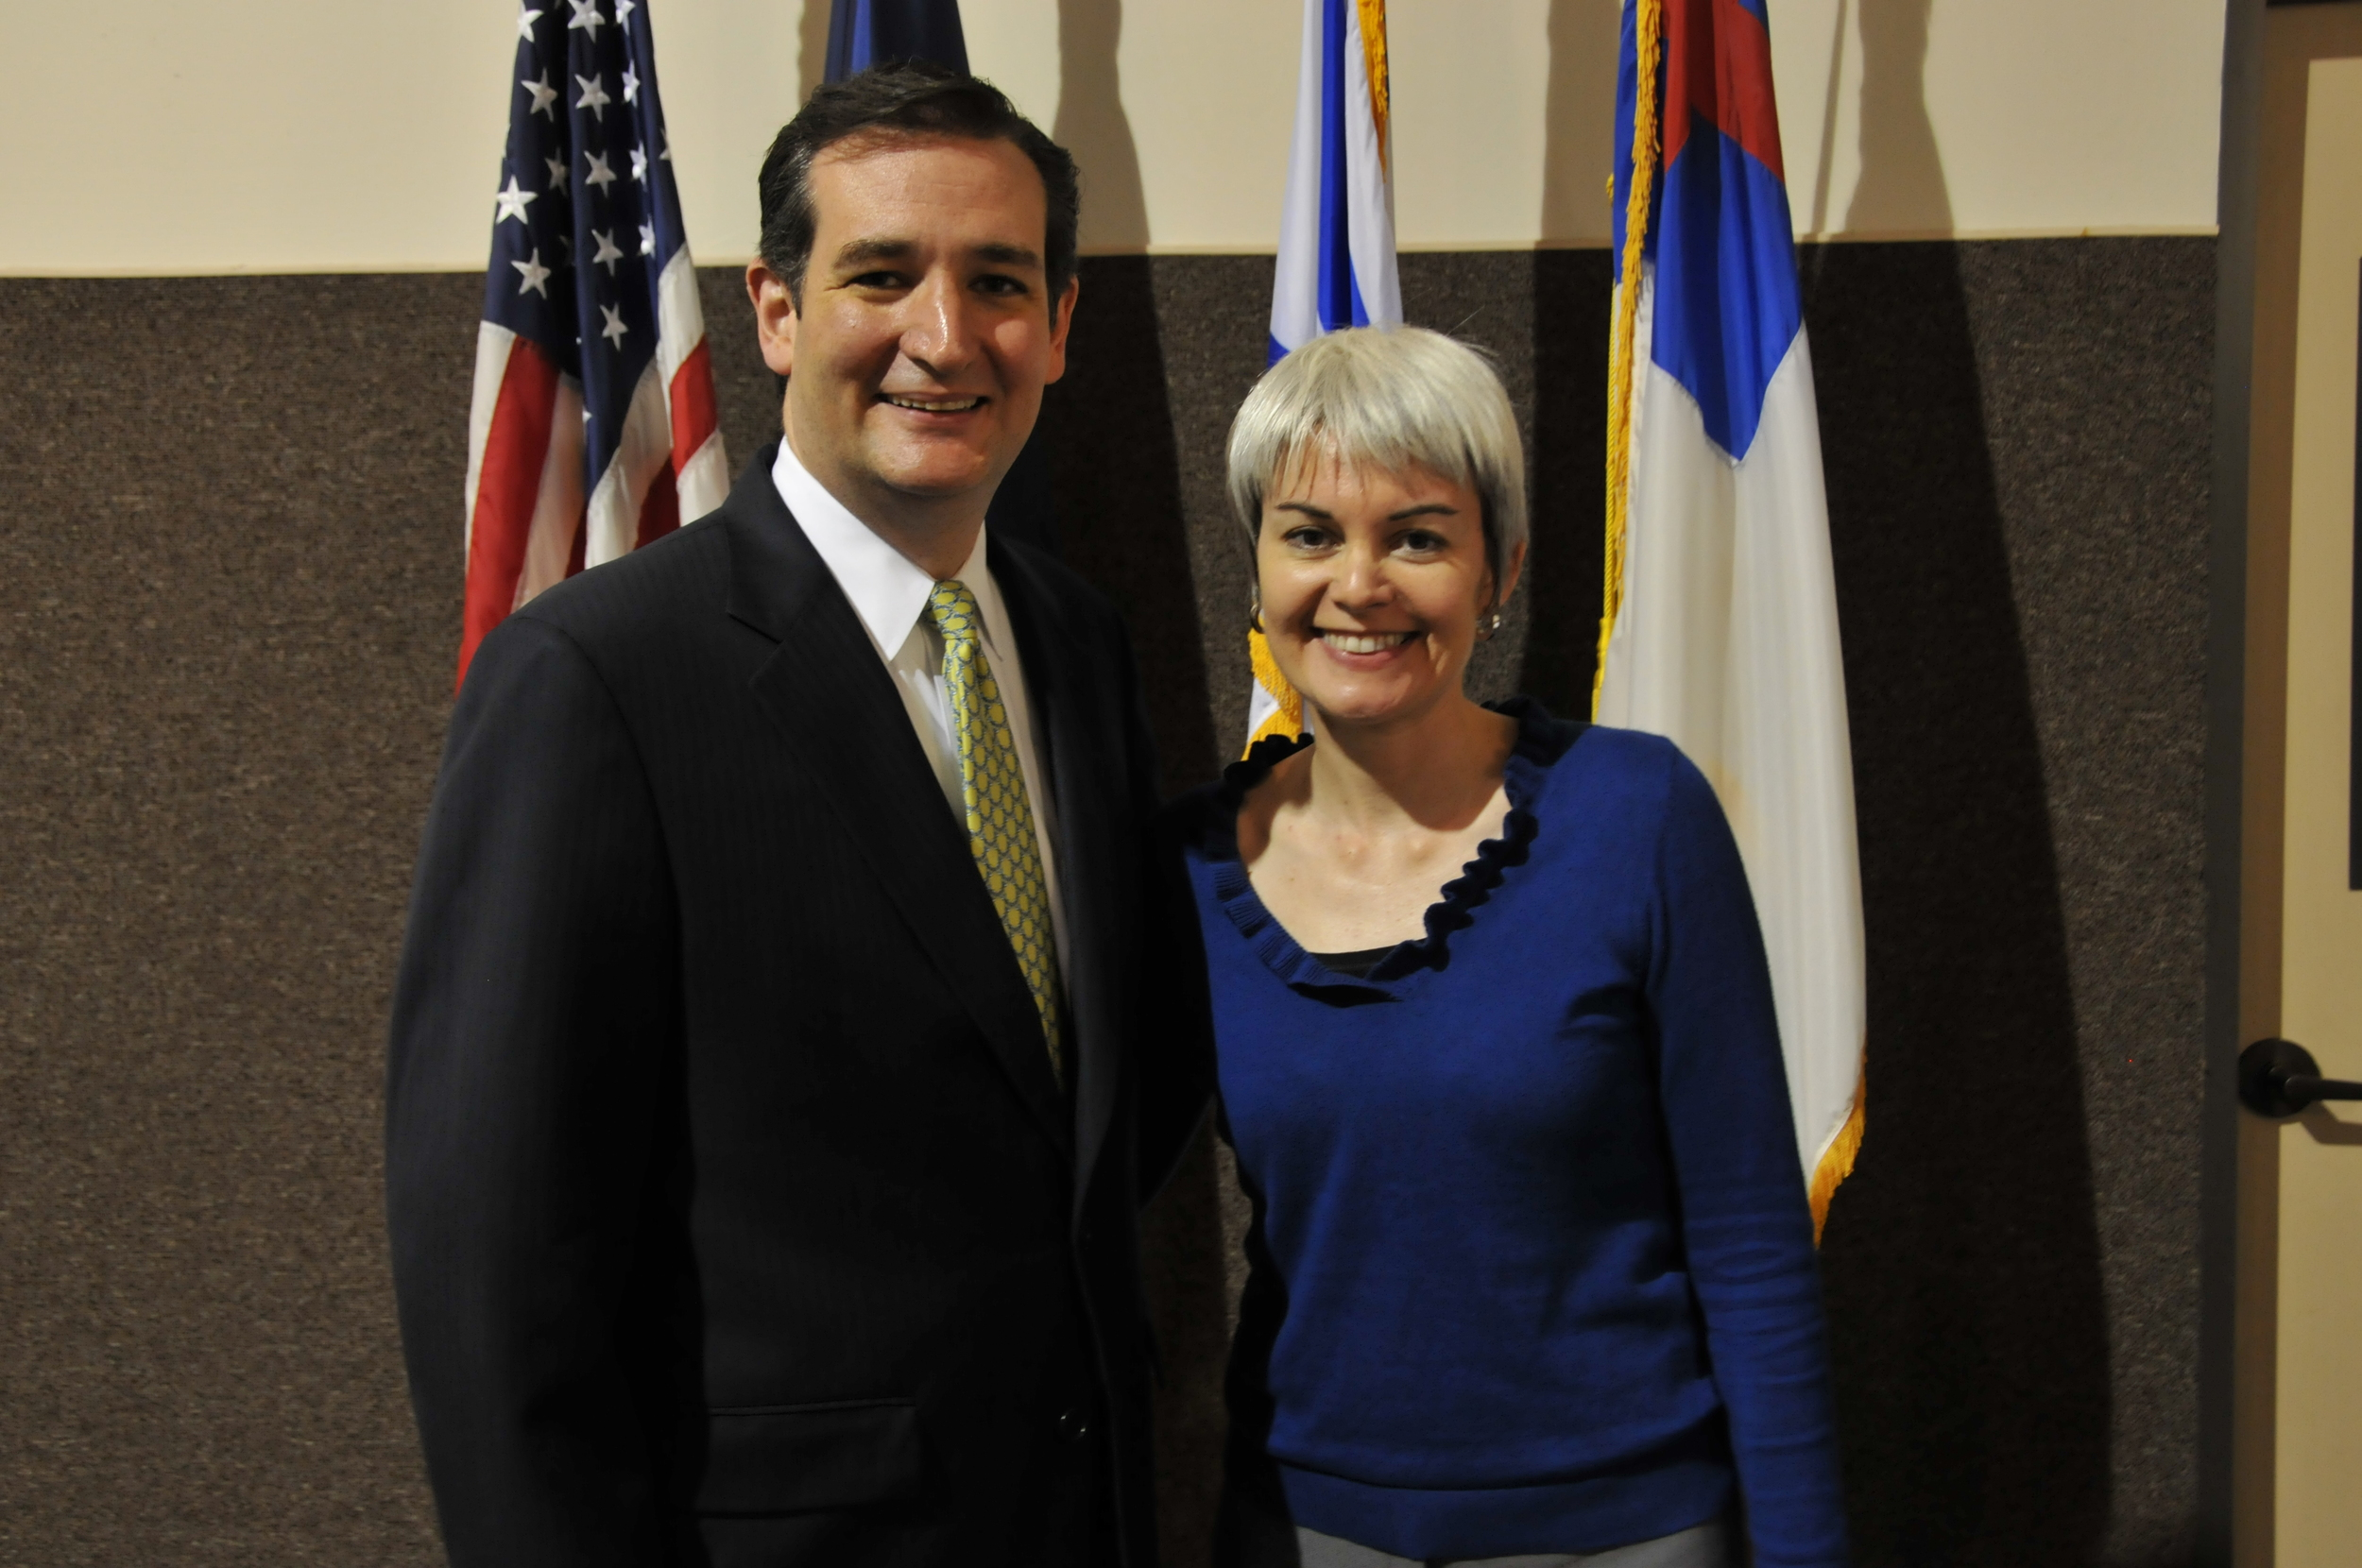 Texas Patriots PAC President Julie Turner with Ted Cruz during his campaign for U.S. Senate.